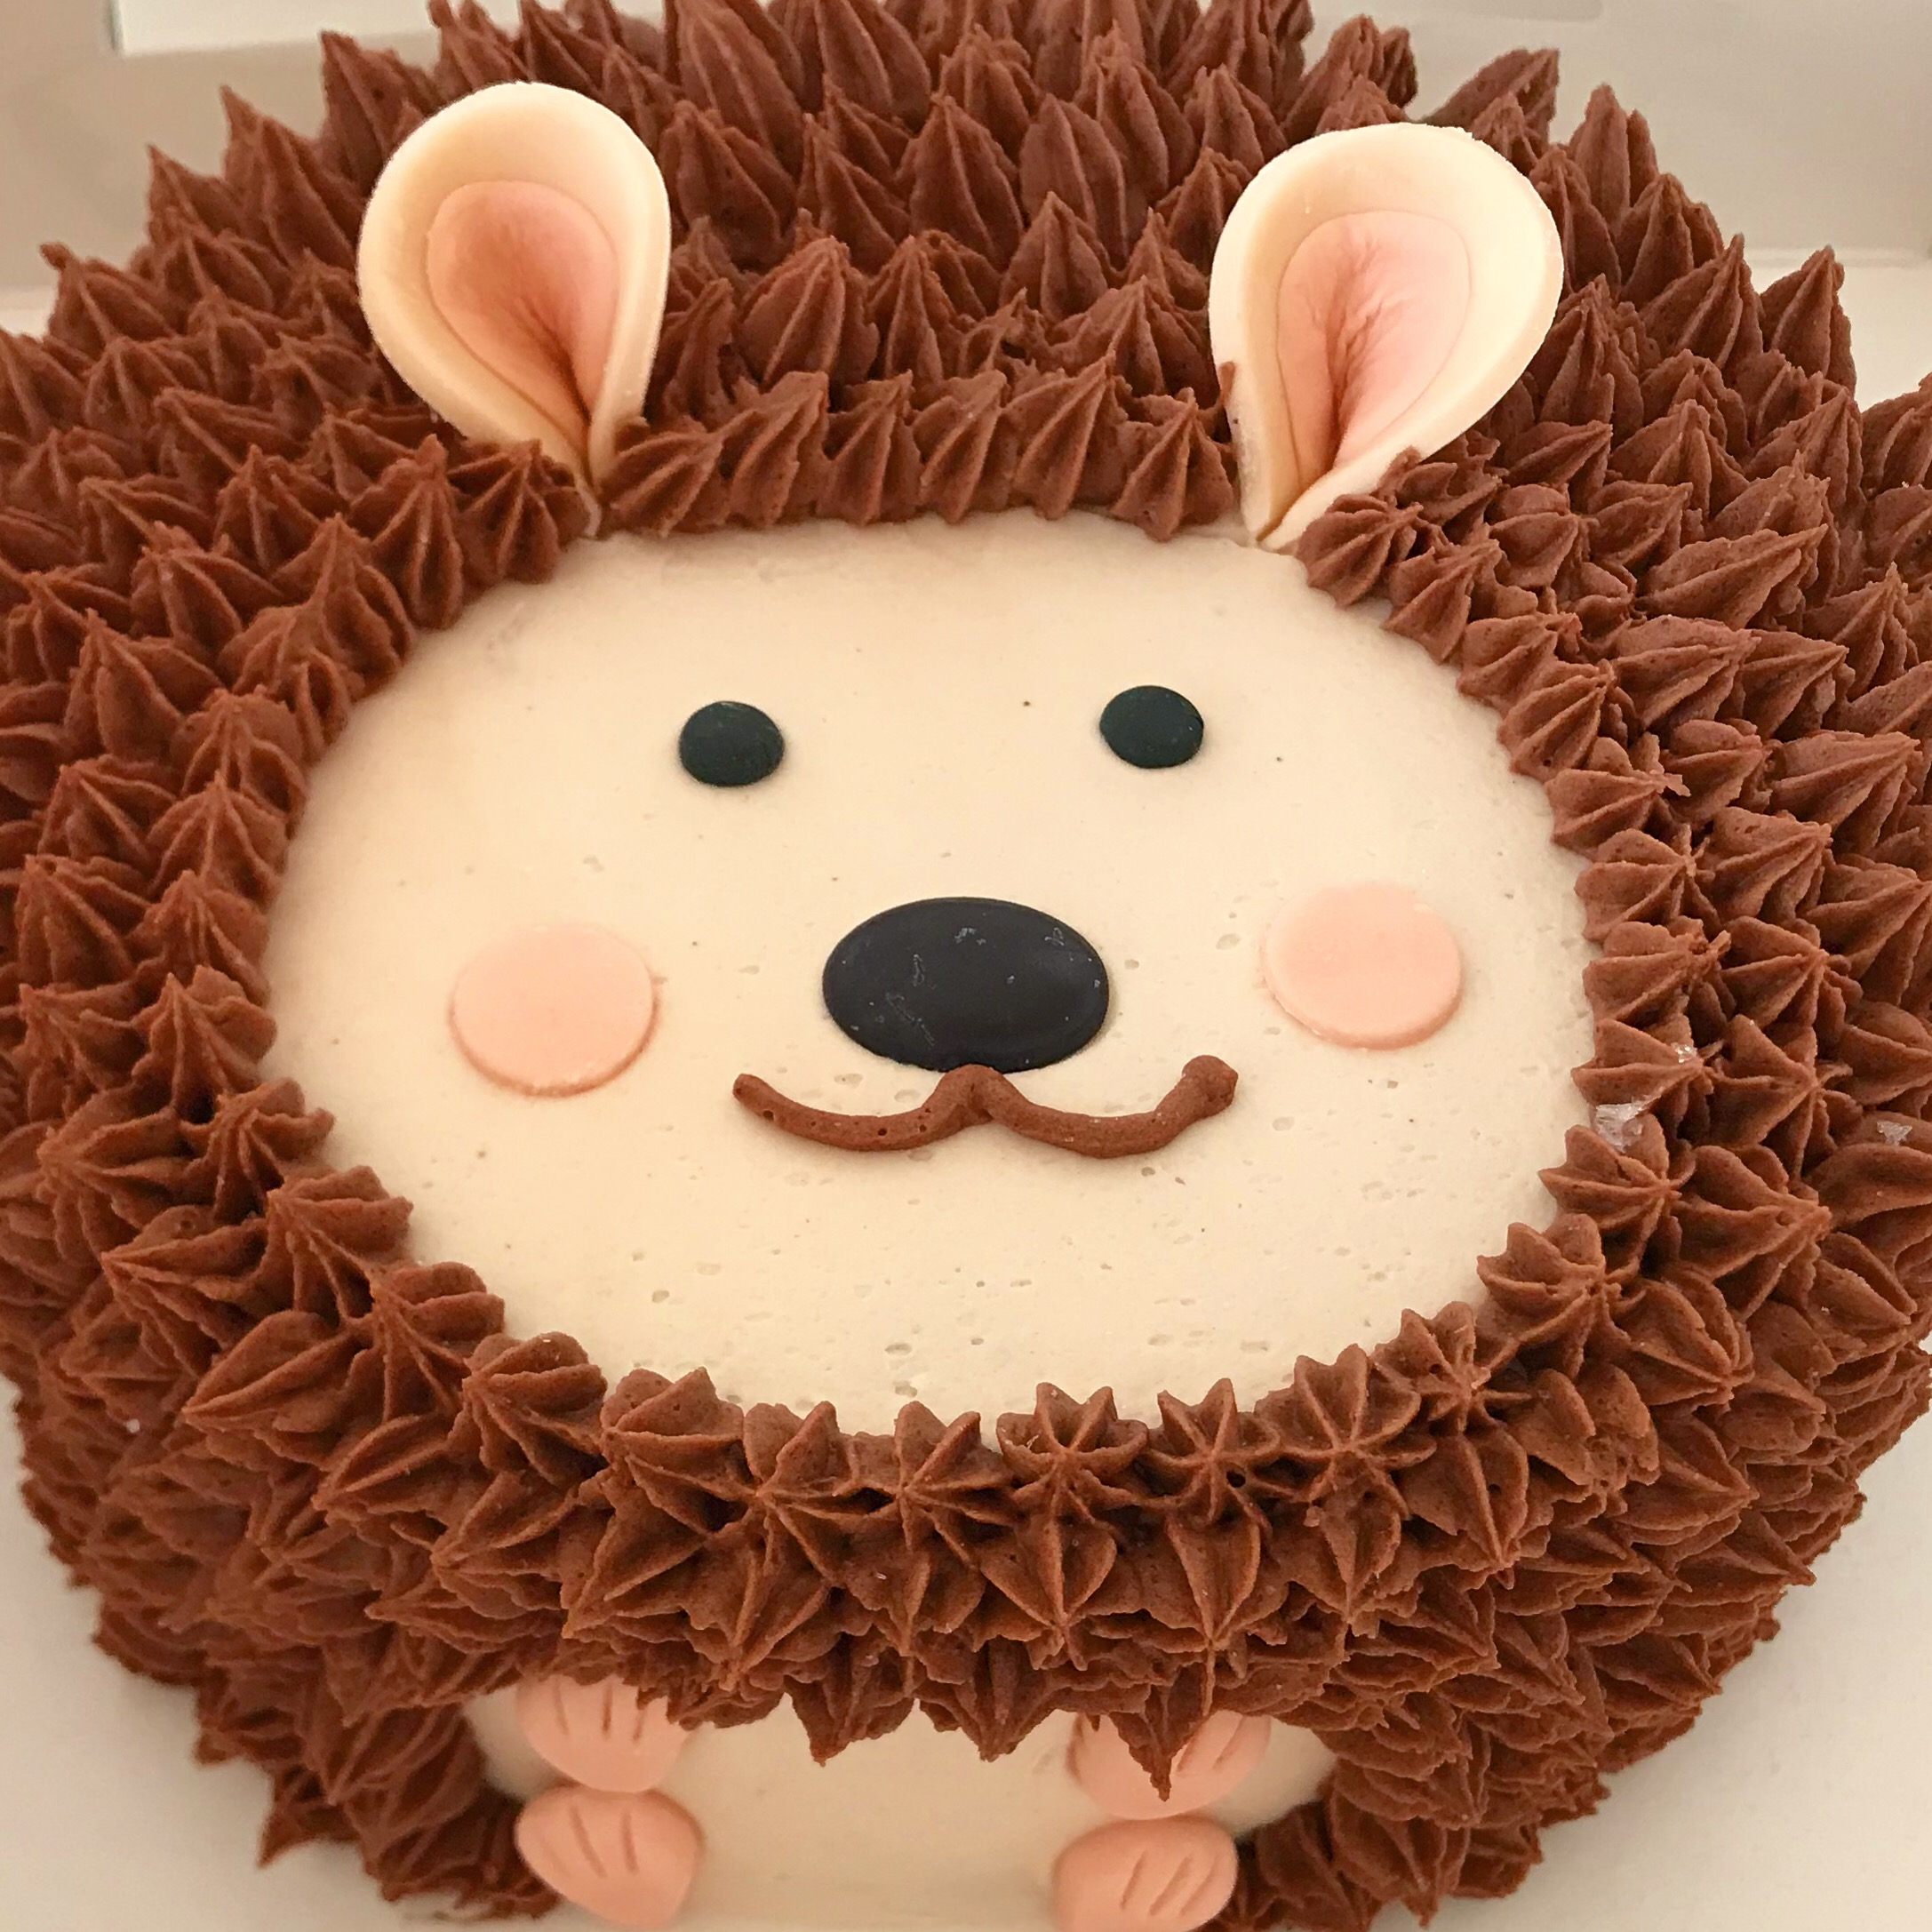 Pleasing Adorable Hedgehog Cake The Cupcake Delivers Funny Birthday Cards Online Overcheapnameinfo